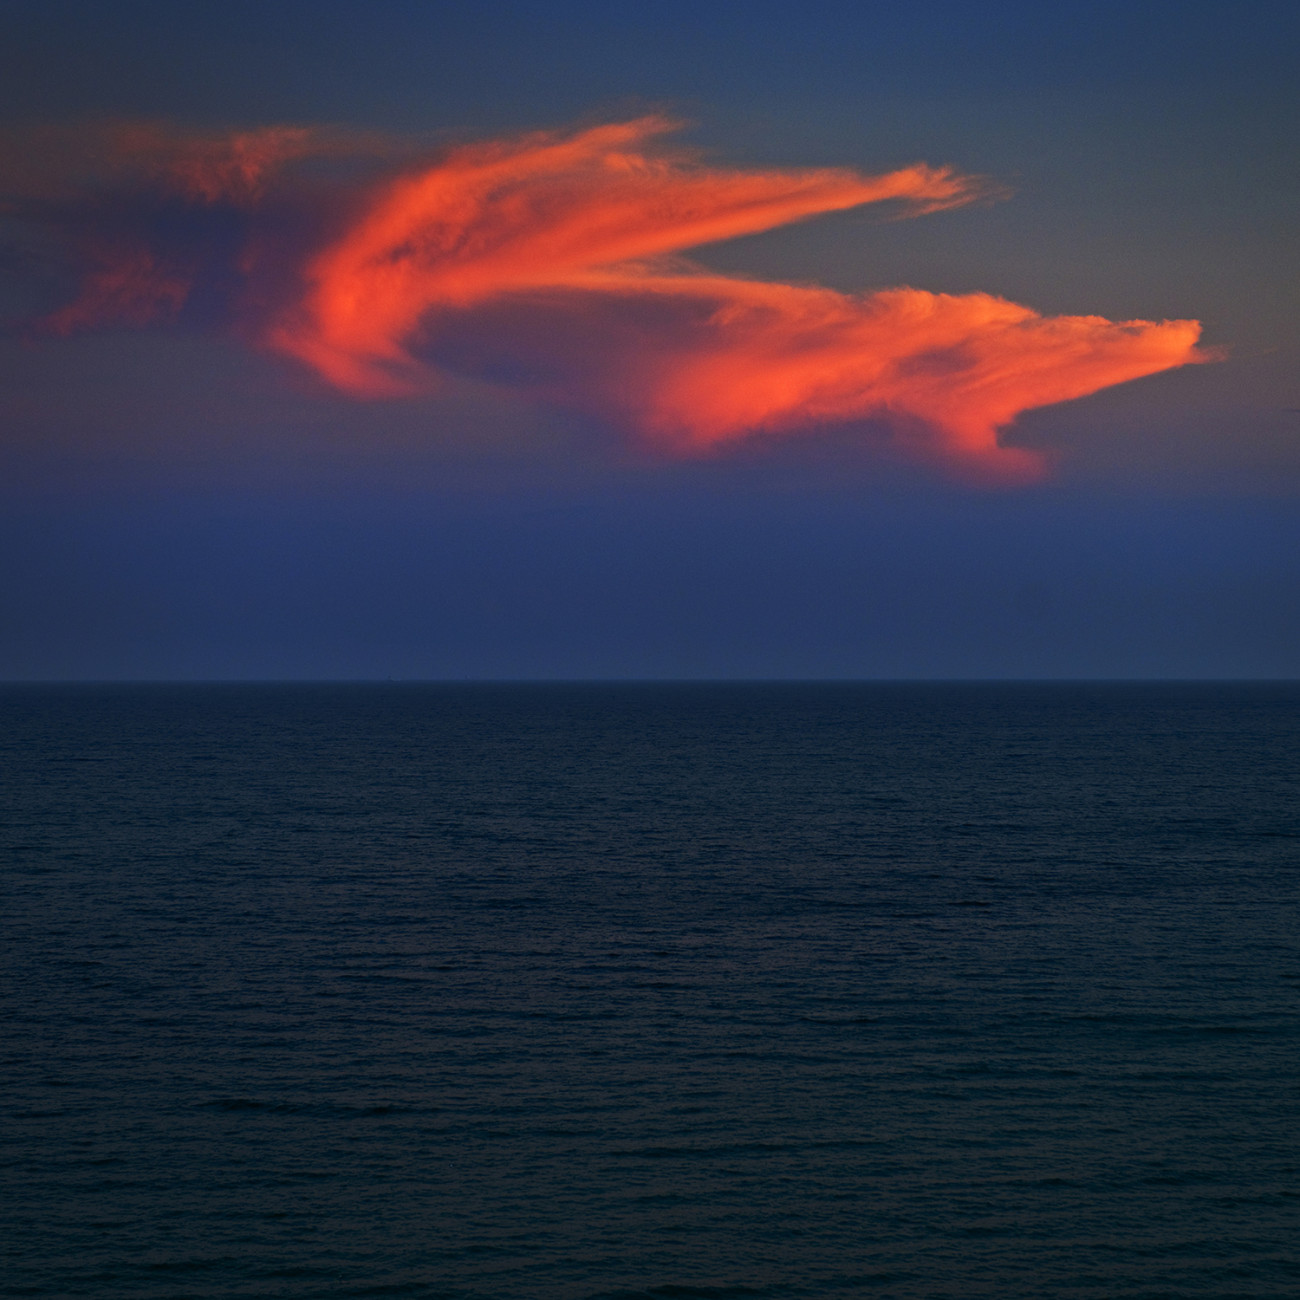 Red cloud, Atlantic Ocean, 2009